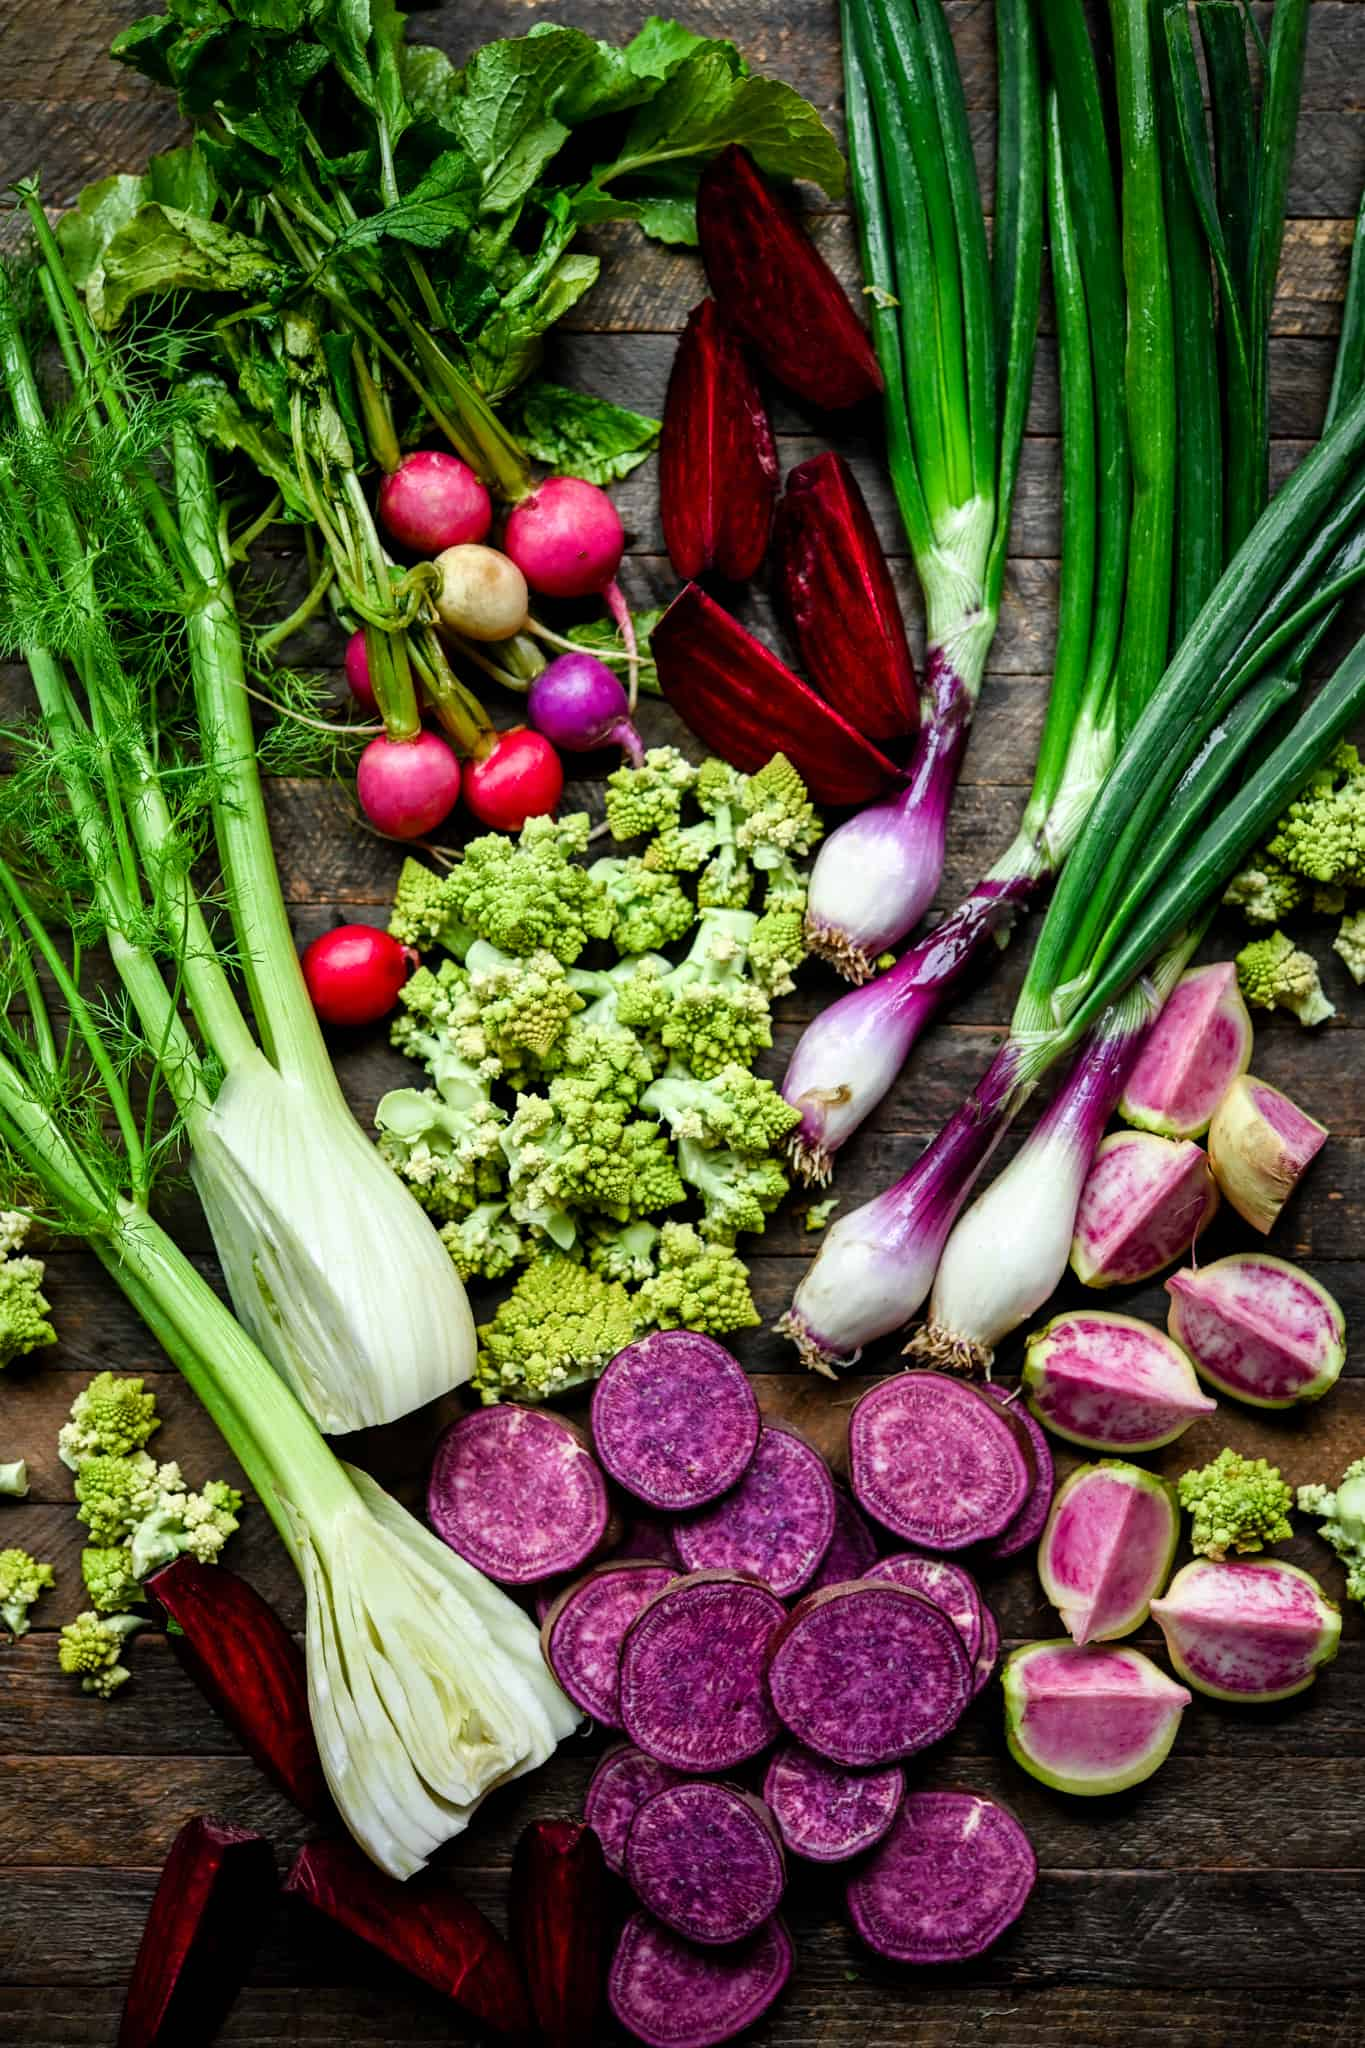 Overhead view of raw purple, green, pink and red vegetables on wood background